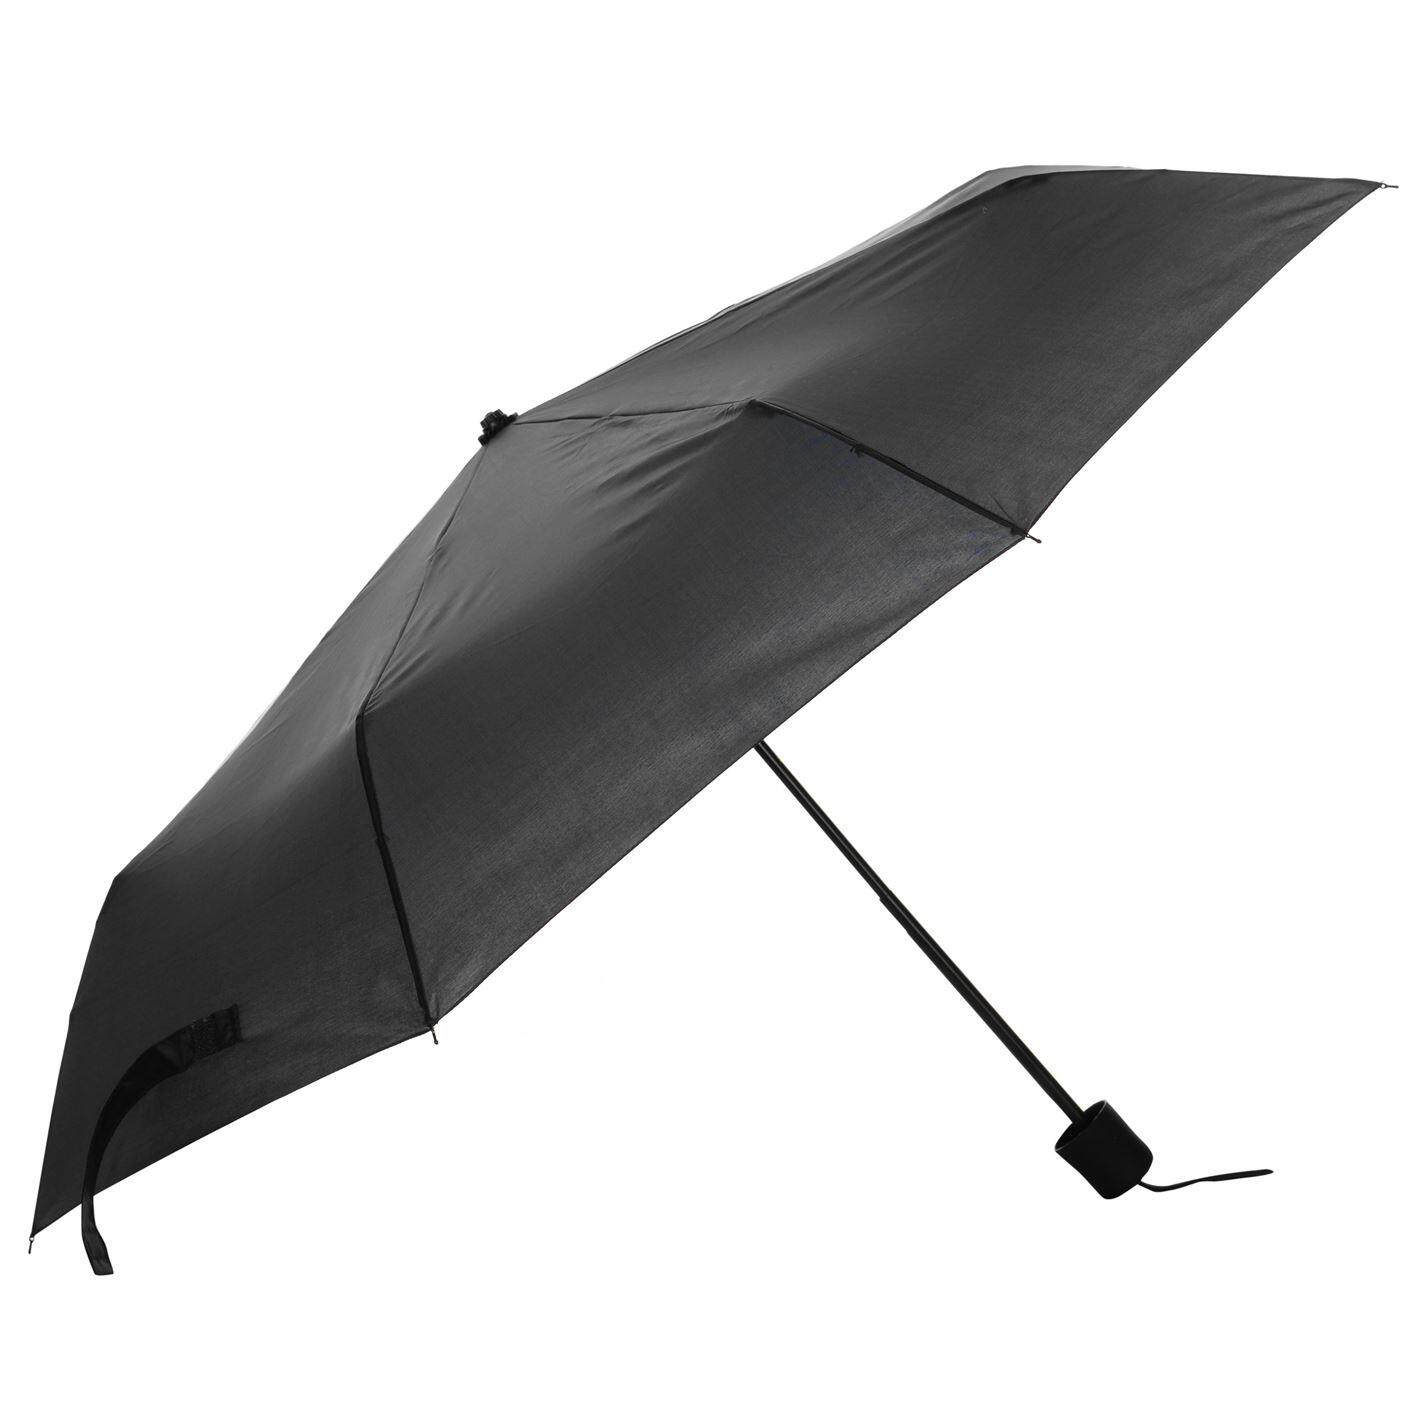 Slazenger Unisex Web Fold Umbrella (black) By Sports Direct Mst Sdn Bhd.